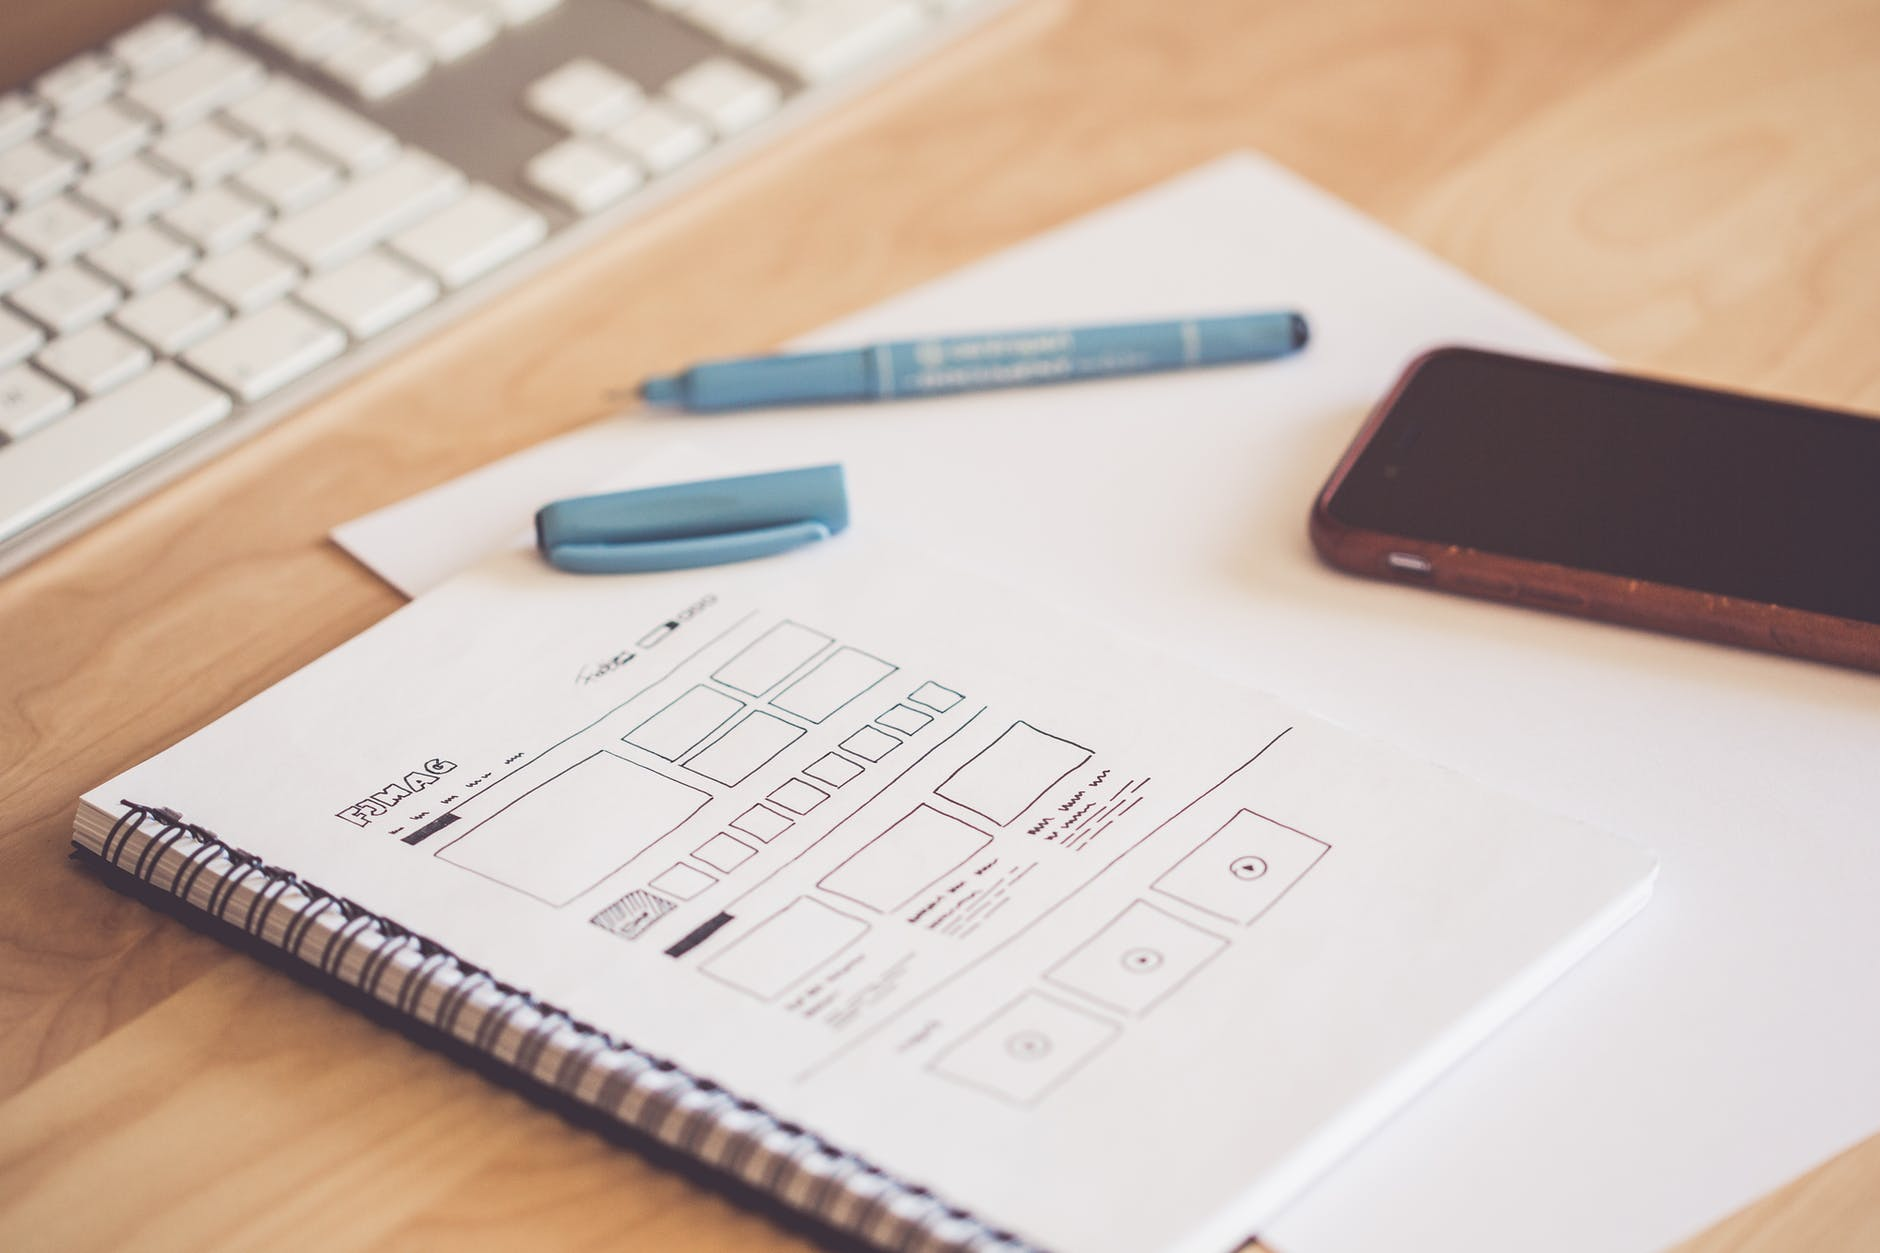 Make Your Website Easier To Use – Grids and Guides